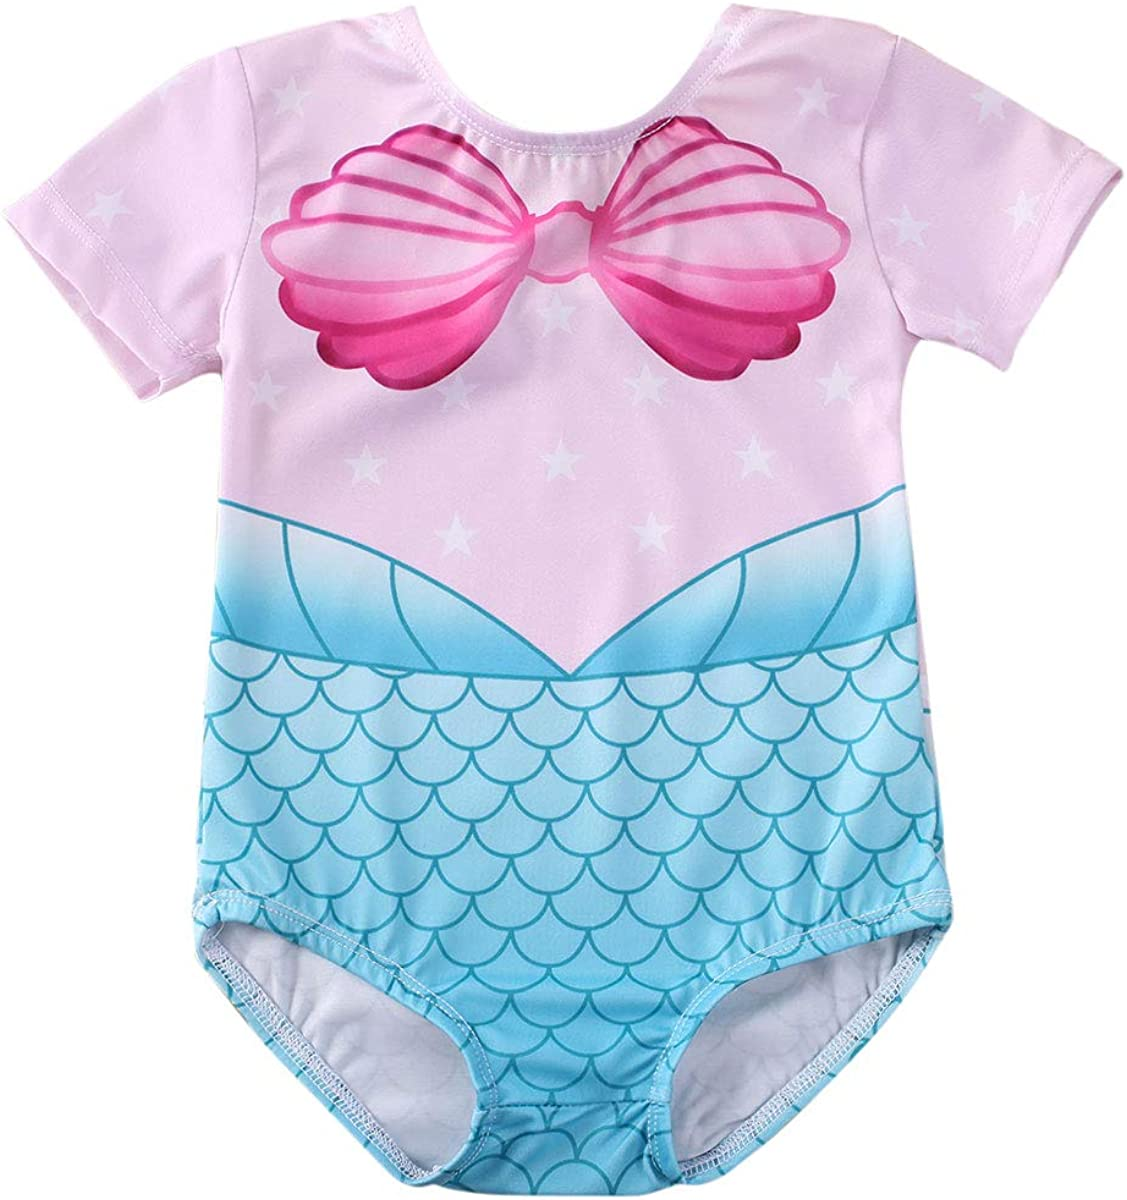 Baby Girl One Piece Swimsuit Year-end annual account Mermaid Swimwear Ruffle Infant Ranking TOP4